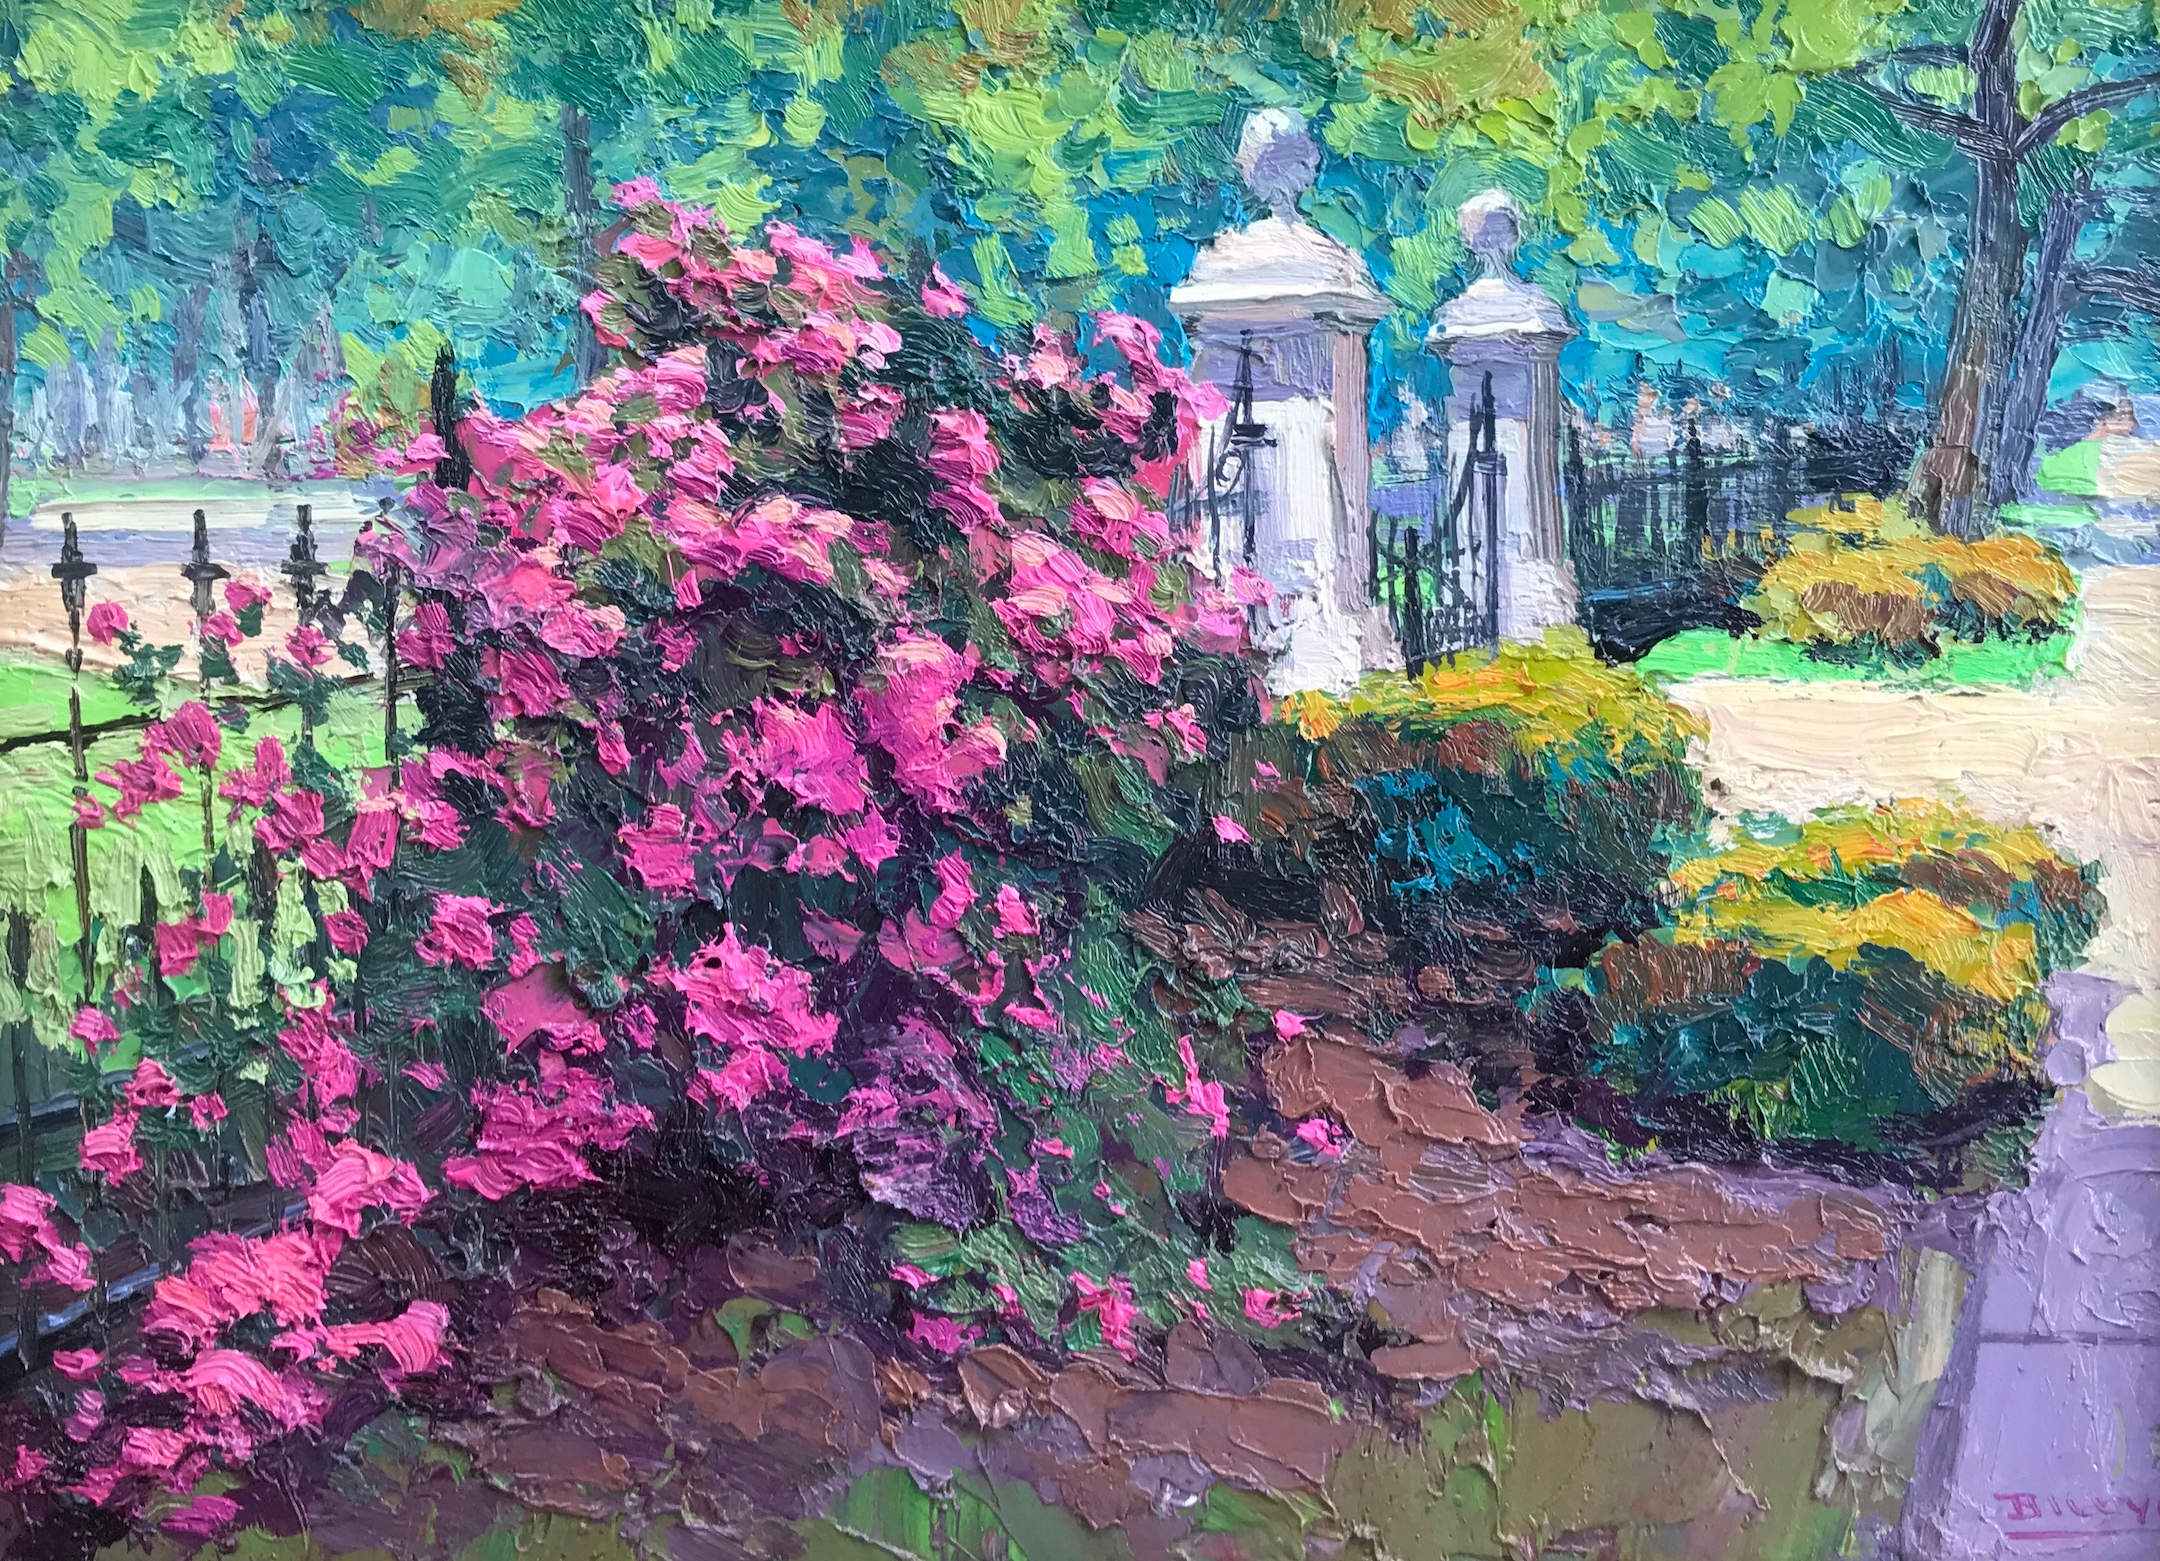 Roses Lafayette Square by Billyo ODonnell